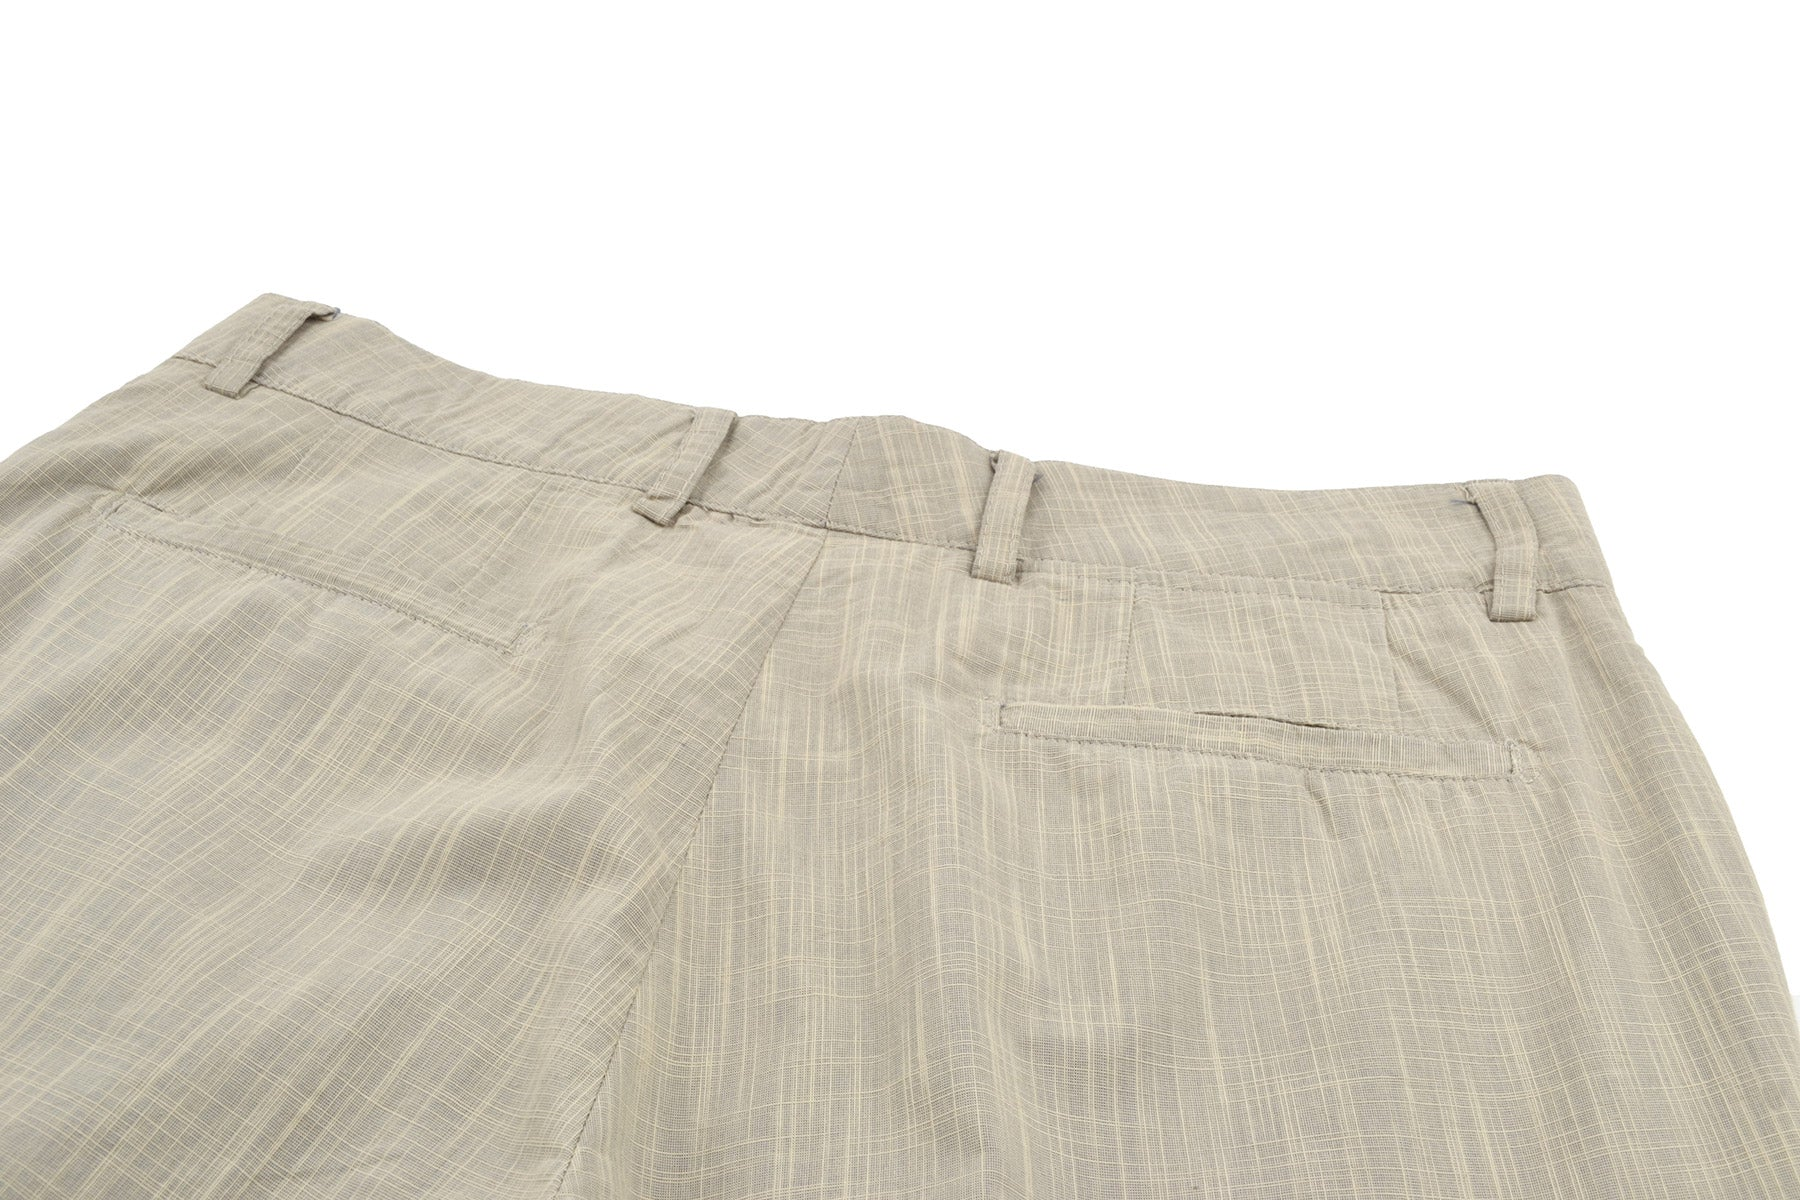 2003 S/S BEIGE ANATOMICAL COTTON TROUSERS